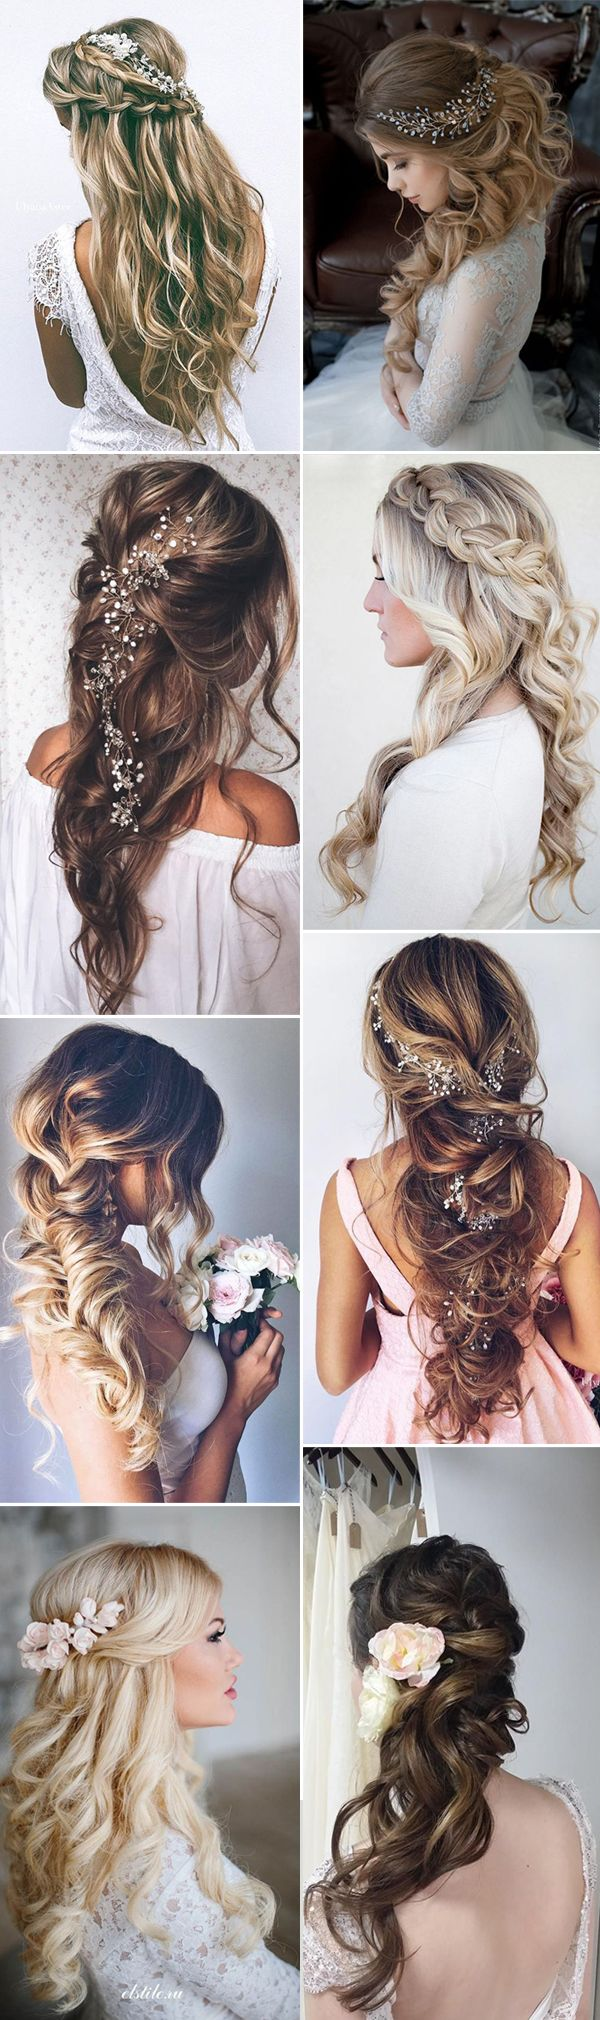 New Hairstyle For Wedding 2017 : New wedding hairstyles for brides and flower girls